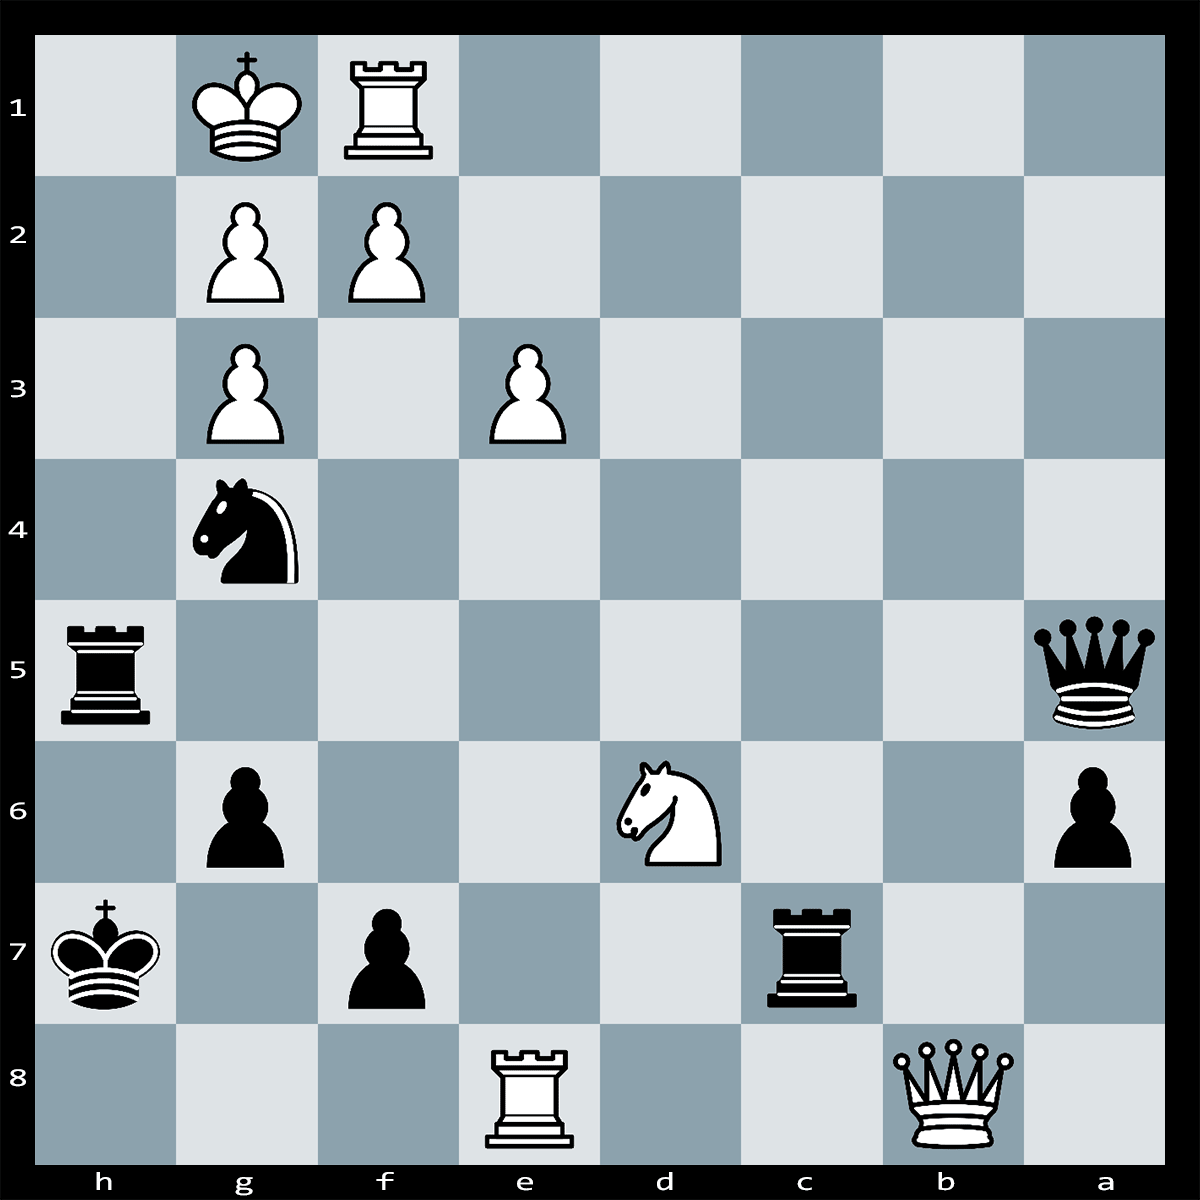 Mate in 3 Moves, Black to Play | Chess Puzzle #180